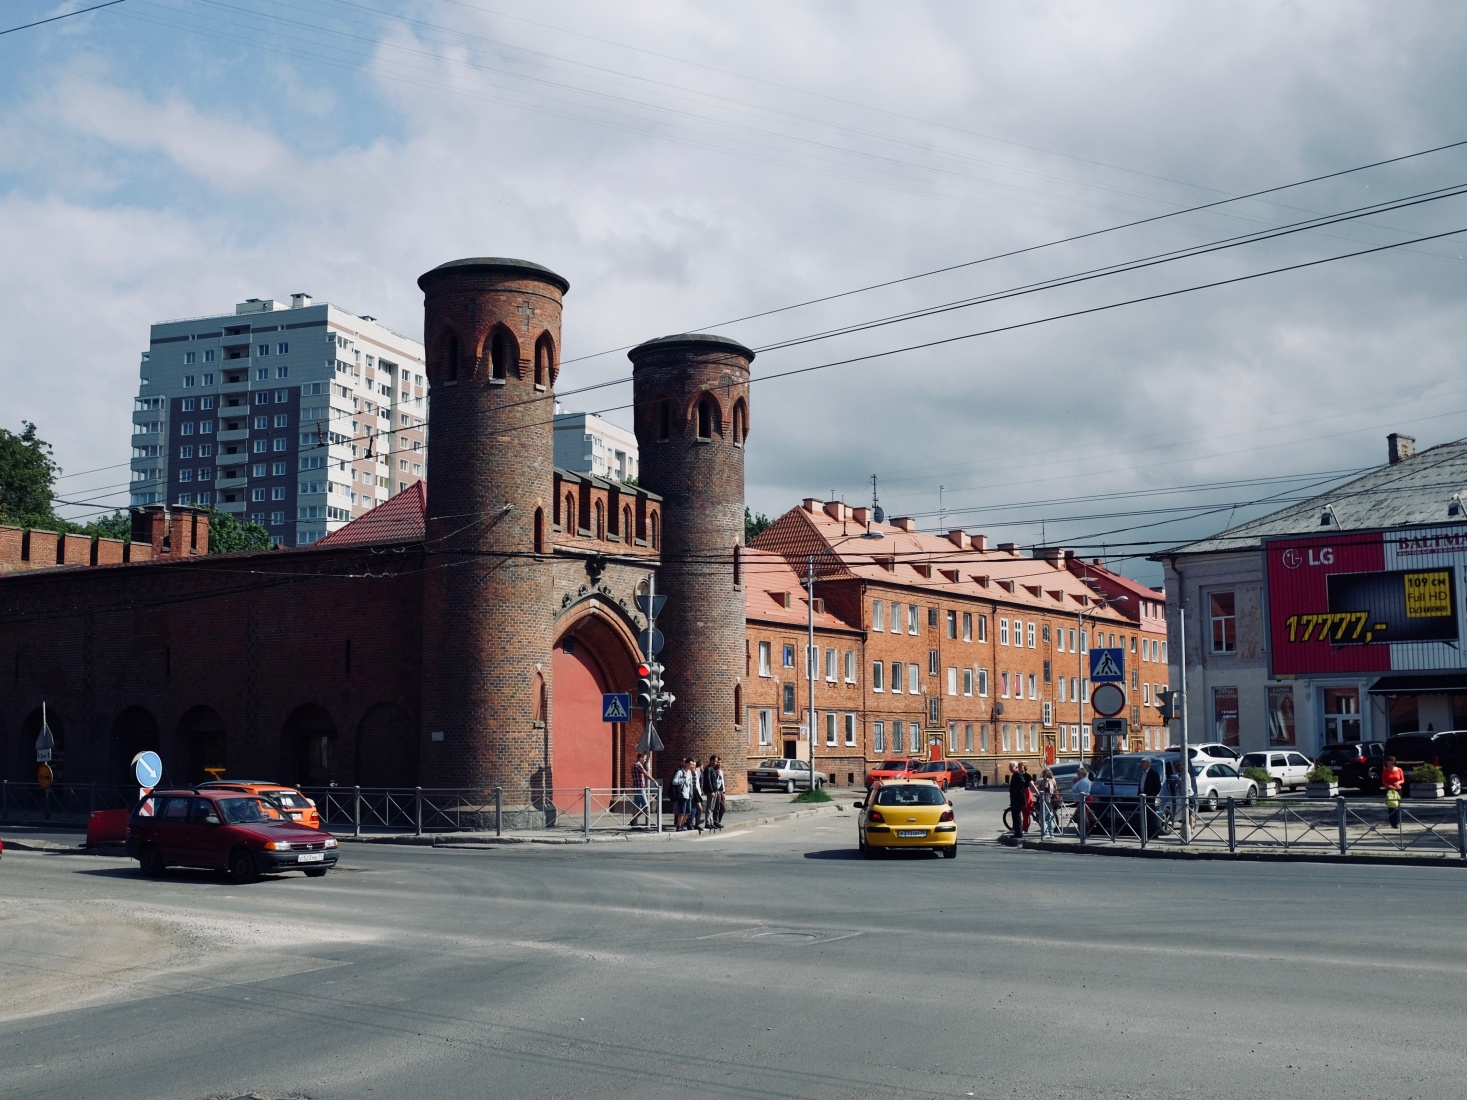 Surviving Prussian military gate, the Zakheim Gate, one of eight, from the mid-19th century in Kaliningrad, Russia, which now houses an art gallery.